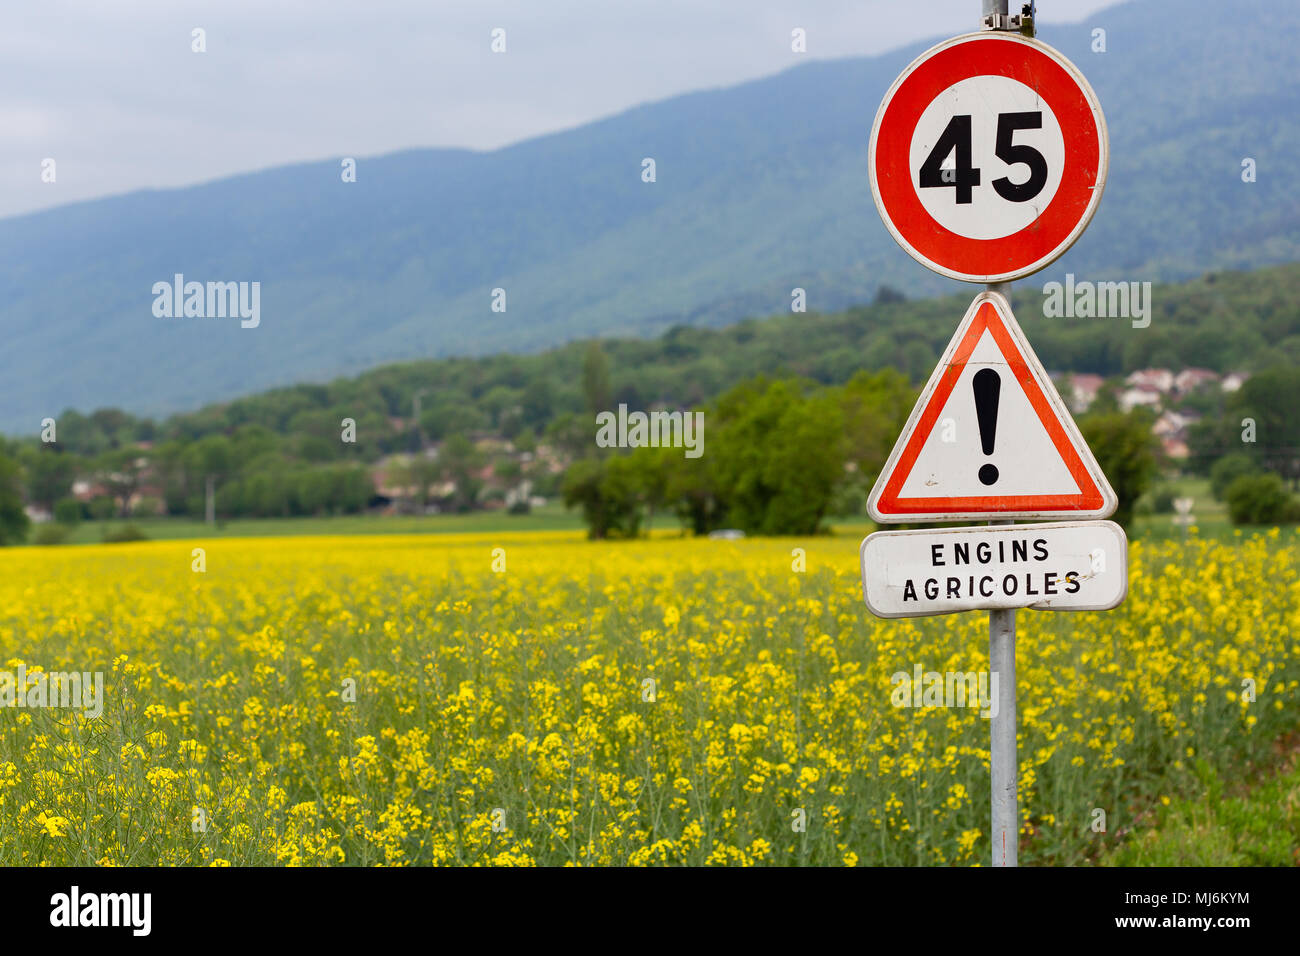 A round and triangular road sign announcing a speed restriction for agricultural vehicles. - Stock Image